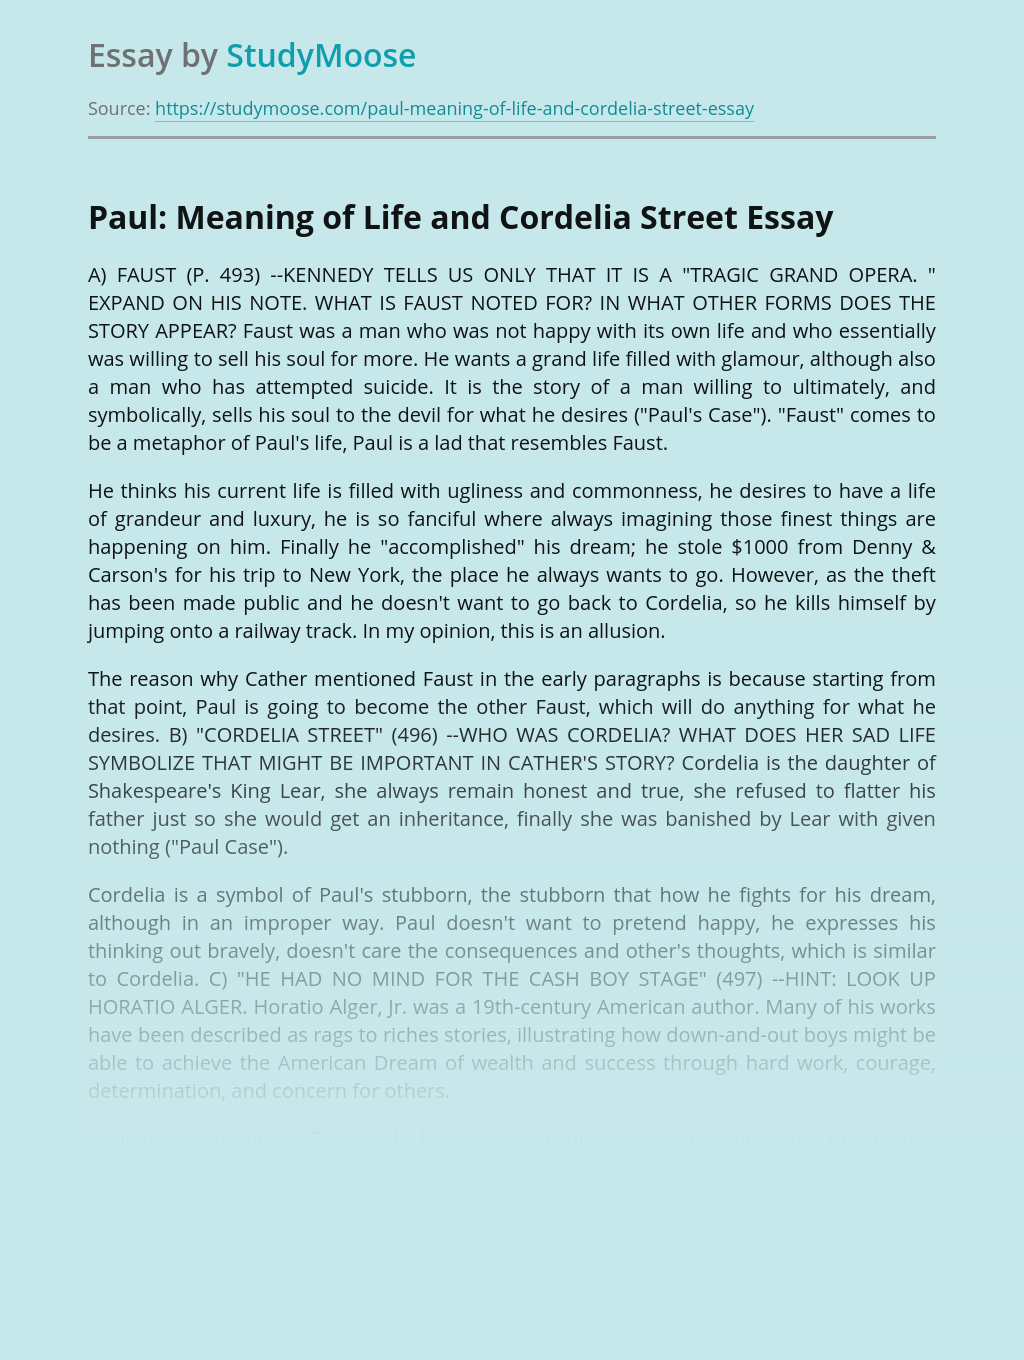 Paul: Meaning of Life and Cordelia Street